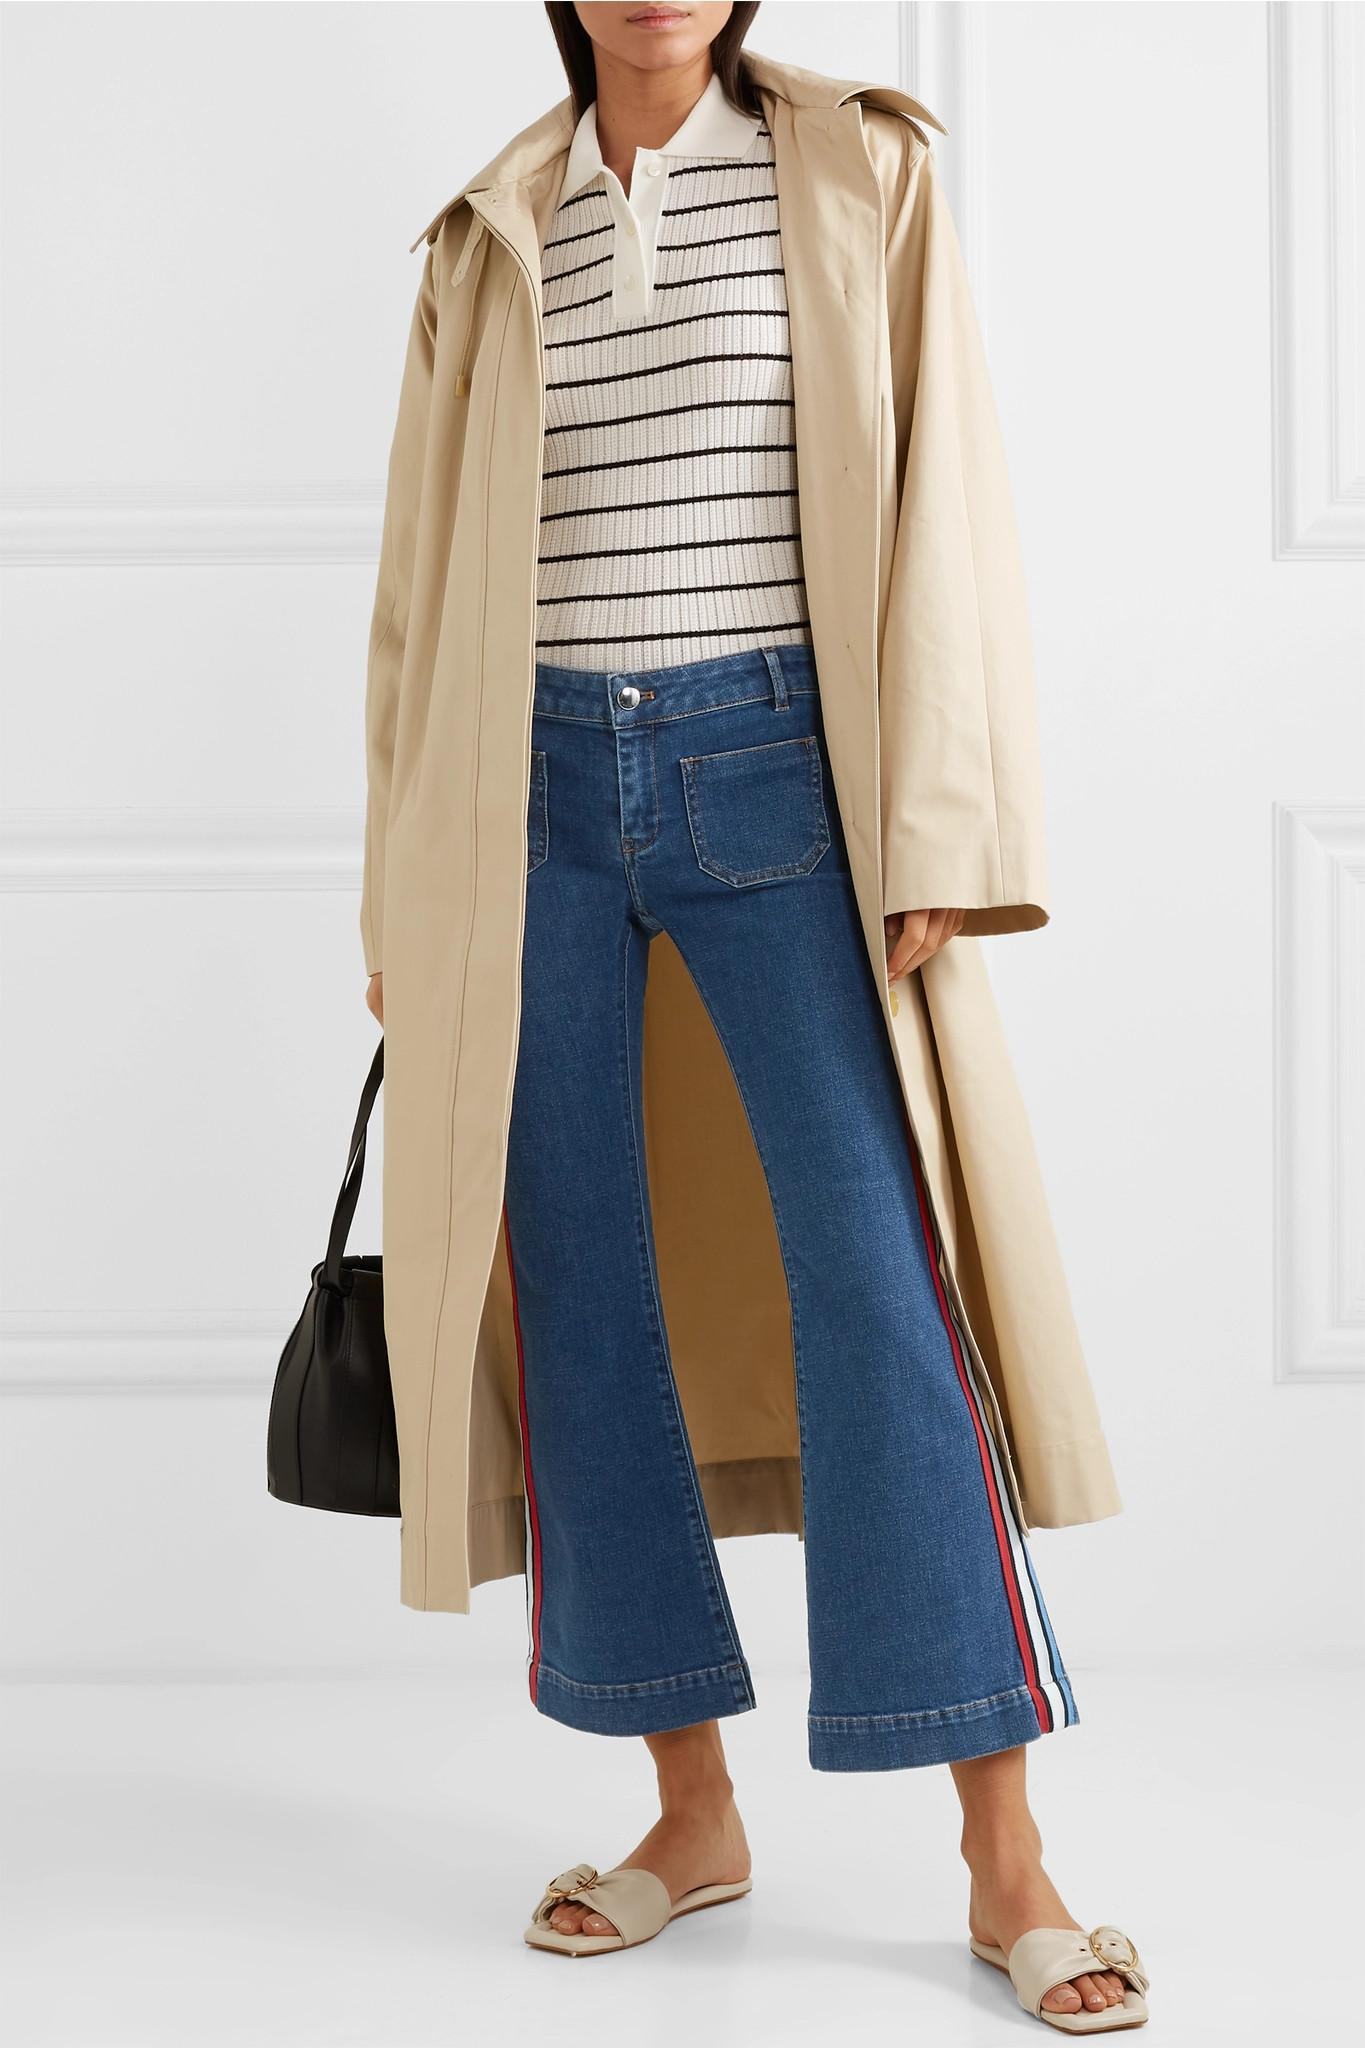 bae31bffb0 Sonia Rykiel - Blue Cropped Striped Low-rise Flared Jeans - Lyst. View  fullscreen